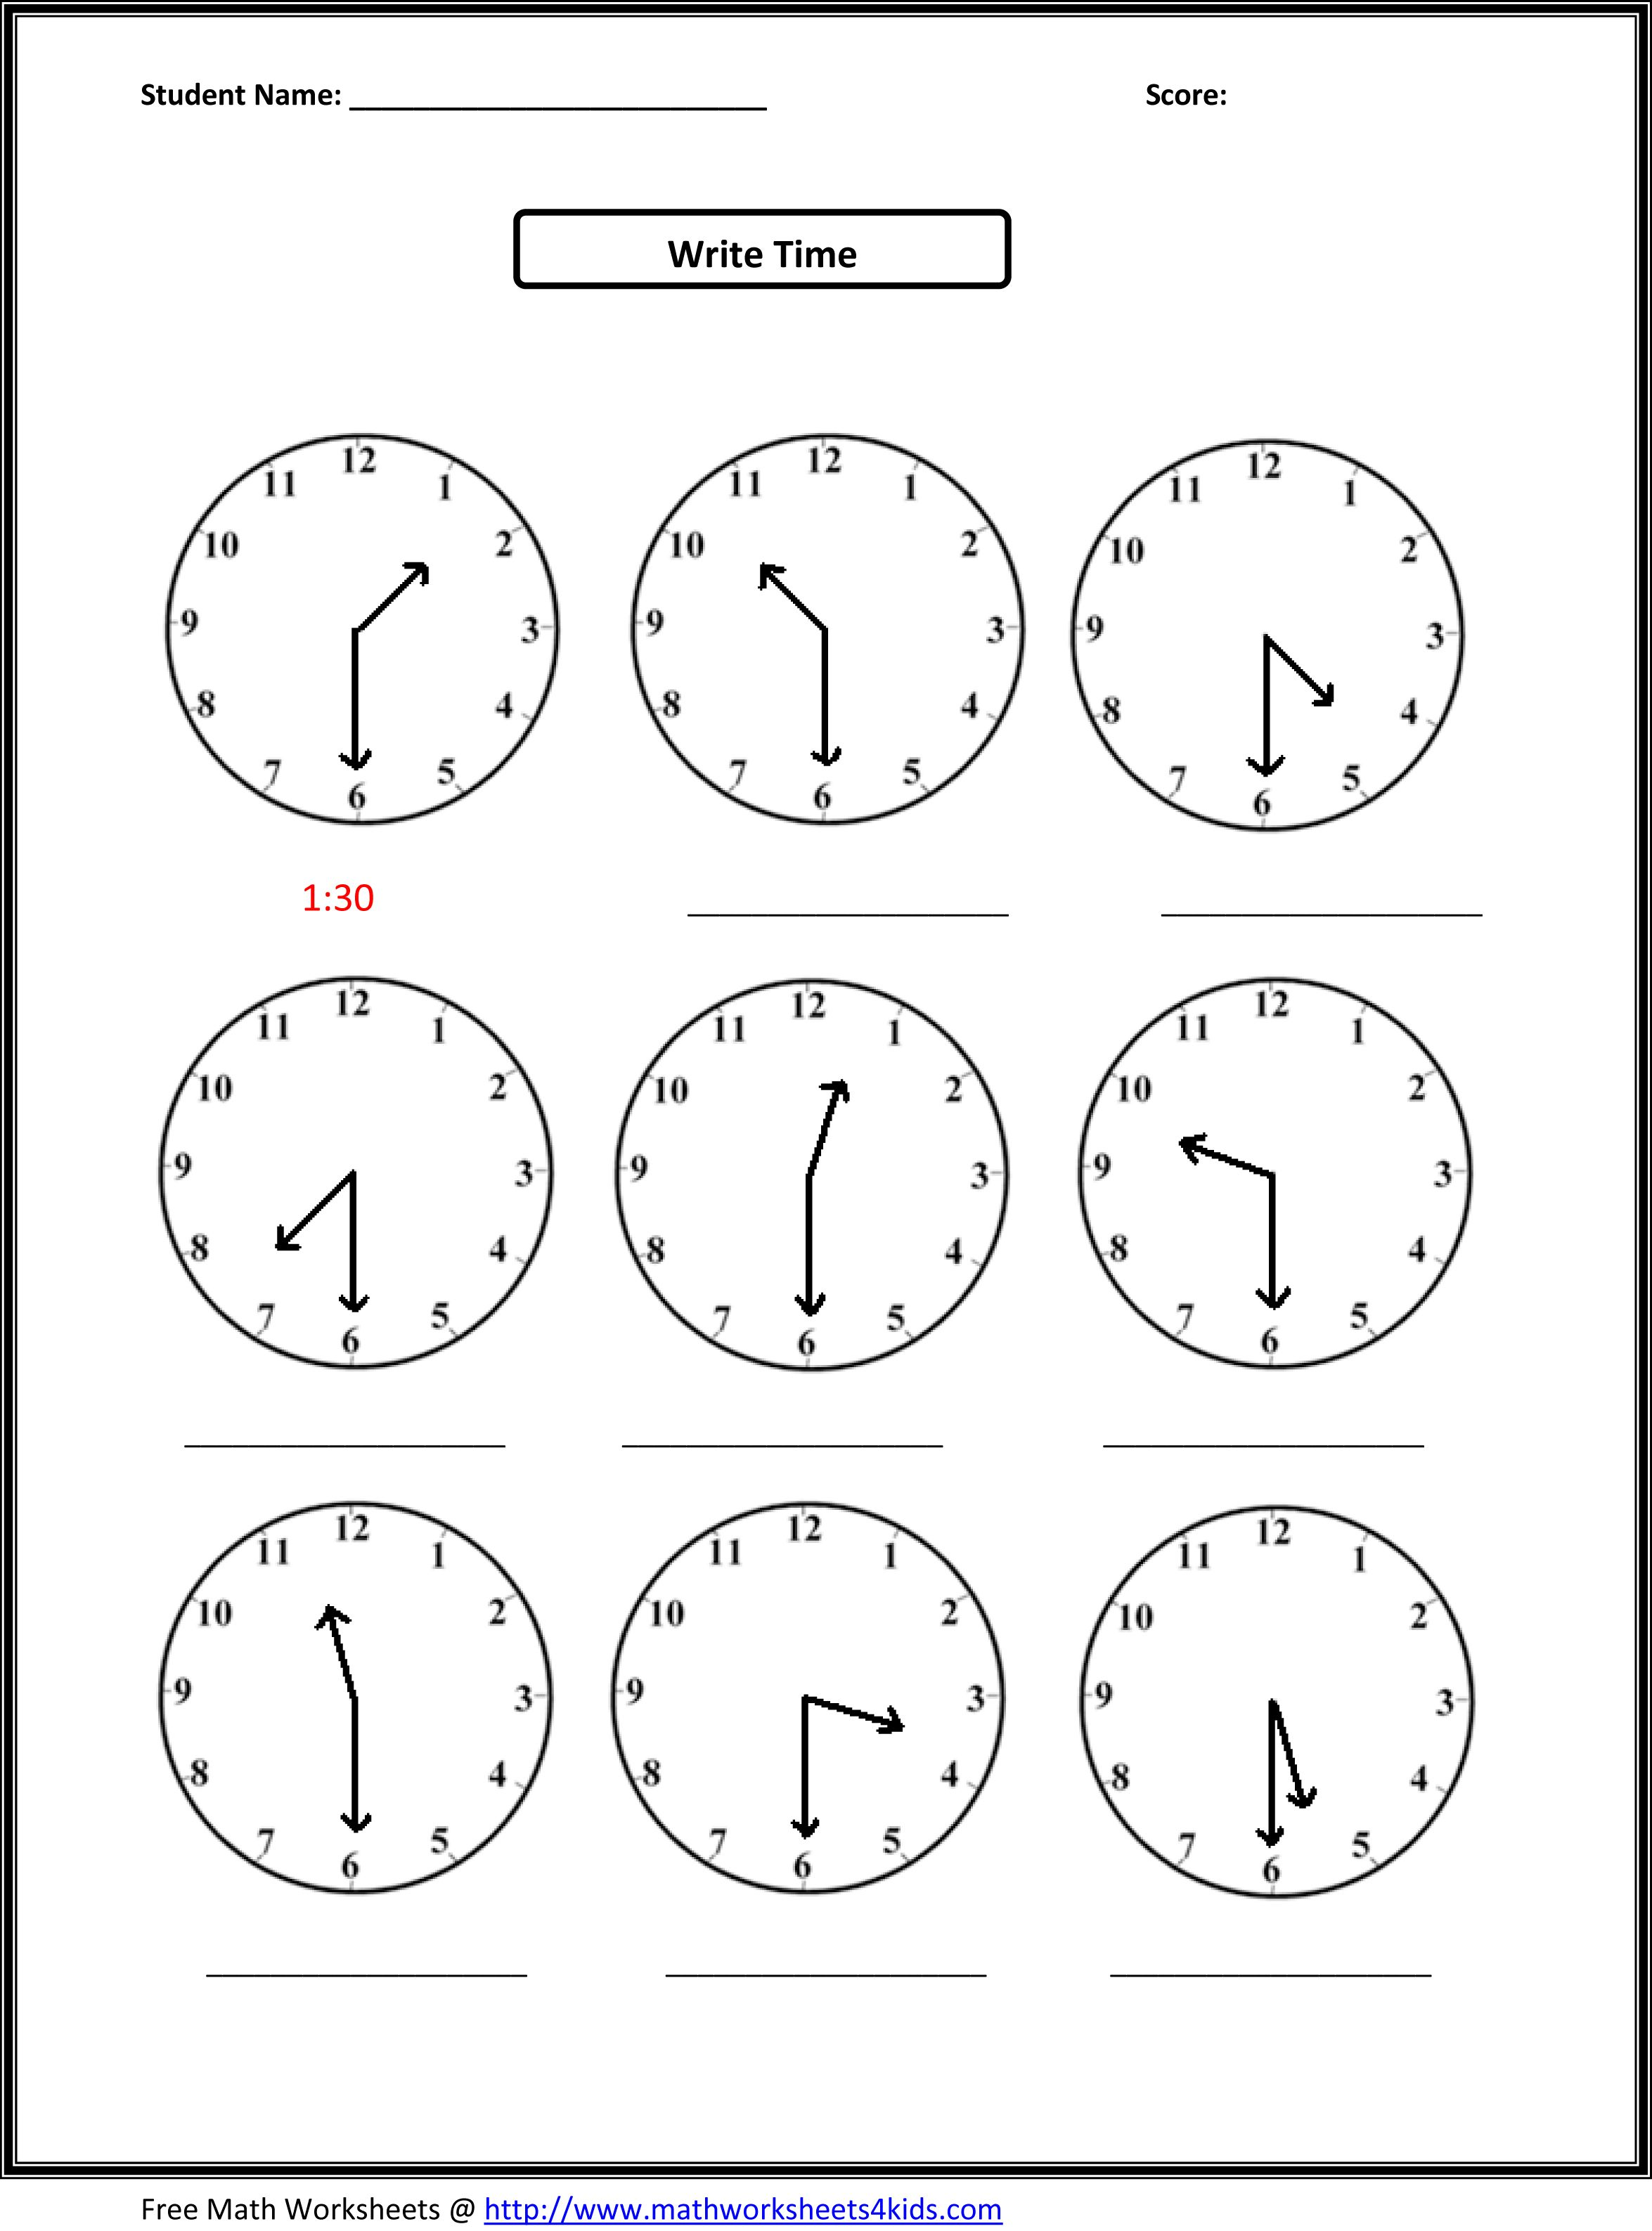 Weirdmailus  Seductive Worksheet On Time For Grade   Reocurent With Likable Free Printable Telling Time Worksheets Nd Grade  Reocurent With Endearing Free Toddler Worksheets Printable Also Long And Short Vowels Worksheets Free In Addition Grade One Worksheet And Mass And Weight Worksheets As Well As Shapes Maths Worksheets Additionally Basic Multiplication Worksheets Free From Reocurentcom With Weirdmailus  Likable Worksheet On Time For Grade   Reocurent With Endearing Free Printable Telling Time Worksheets Nd Grade  Reocurent And Seductive Free Toddler Worksheets Printable Also Long And Short Vowels Worksheets Free In Addition Grade One Worksheet From Reocurentcom